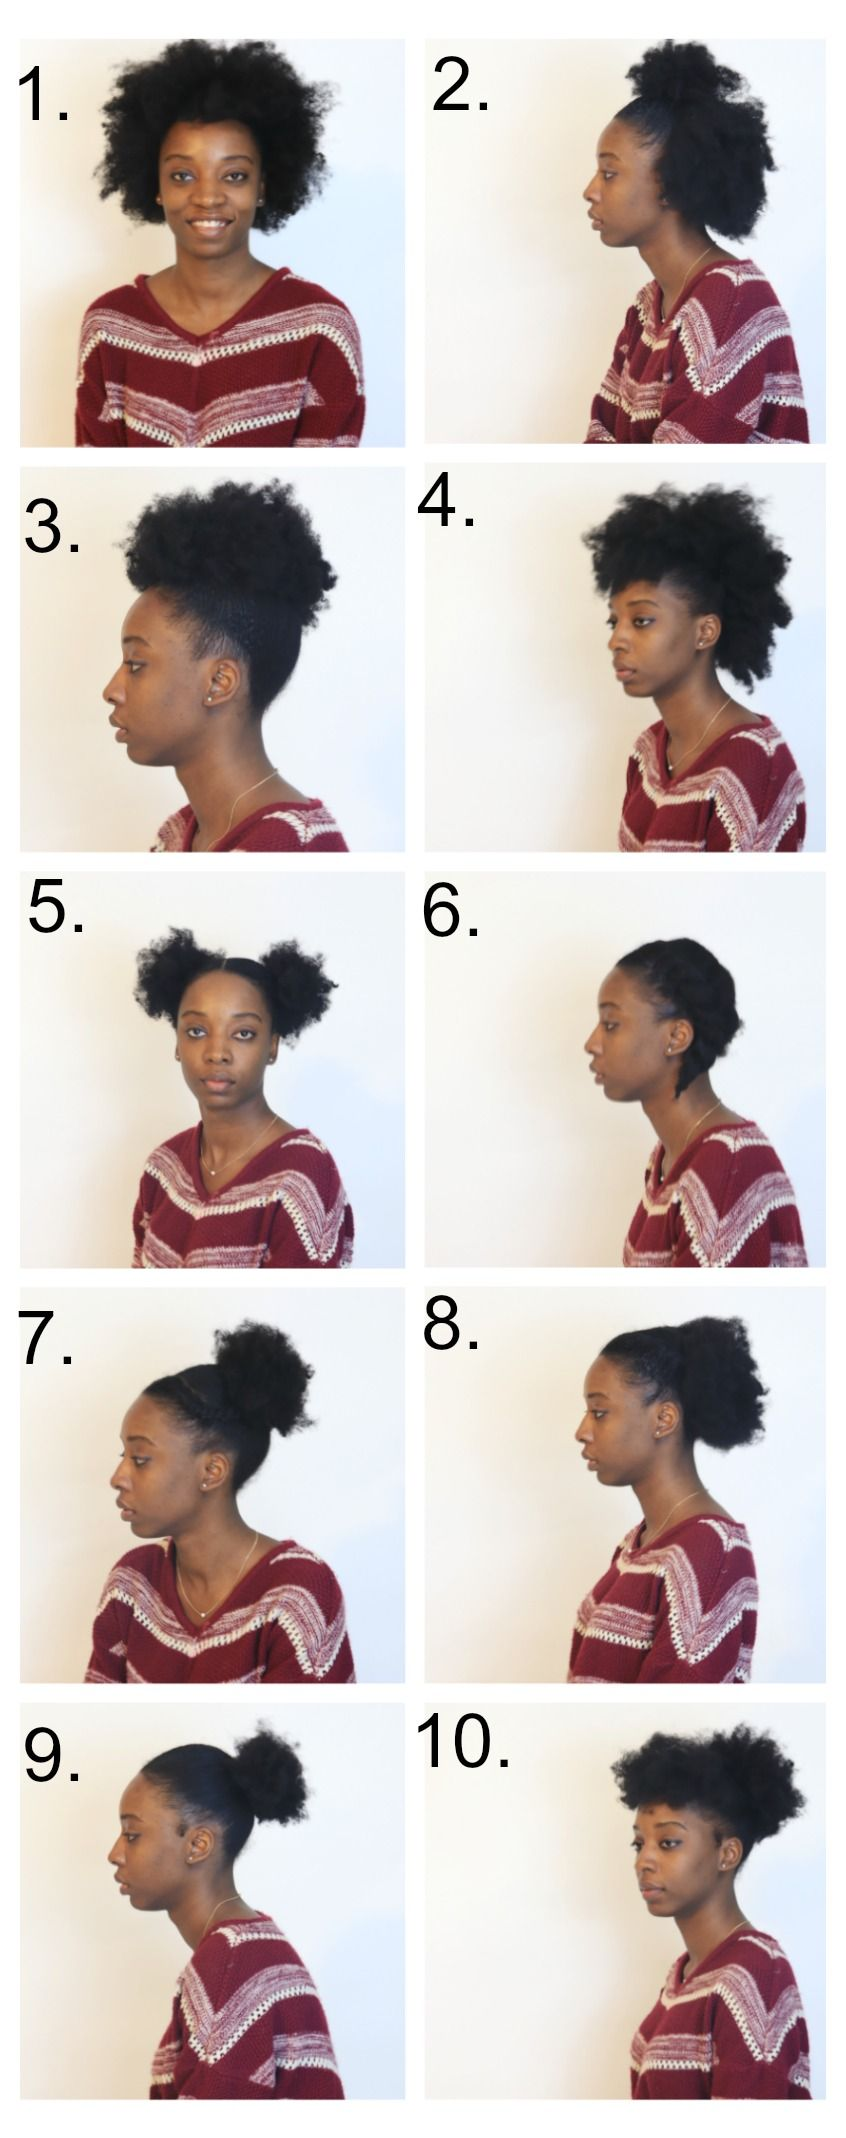 10 Easy Ways To Style Short Natural Hair Medium Natural Hair Styles Natural Hair Styles Natural Hair Styles Easy